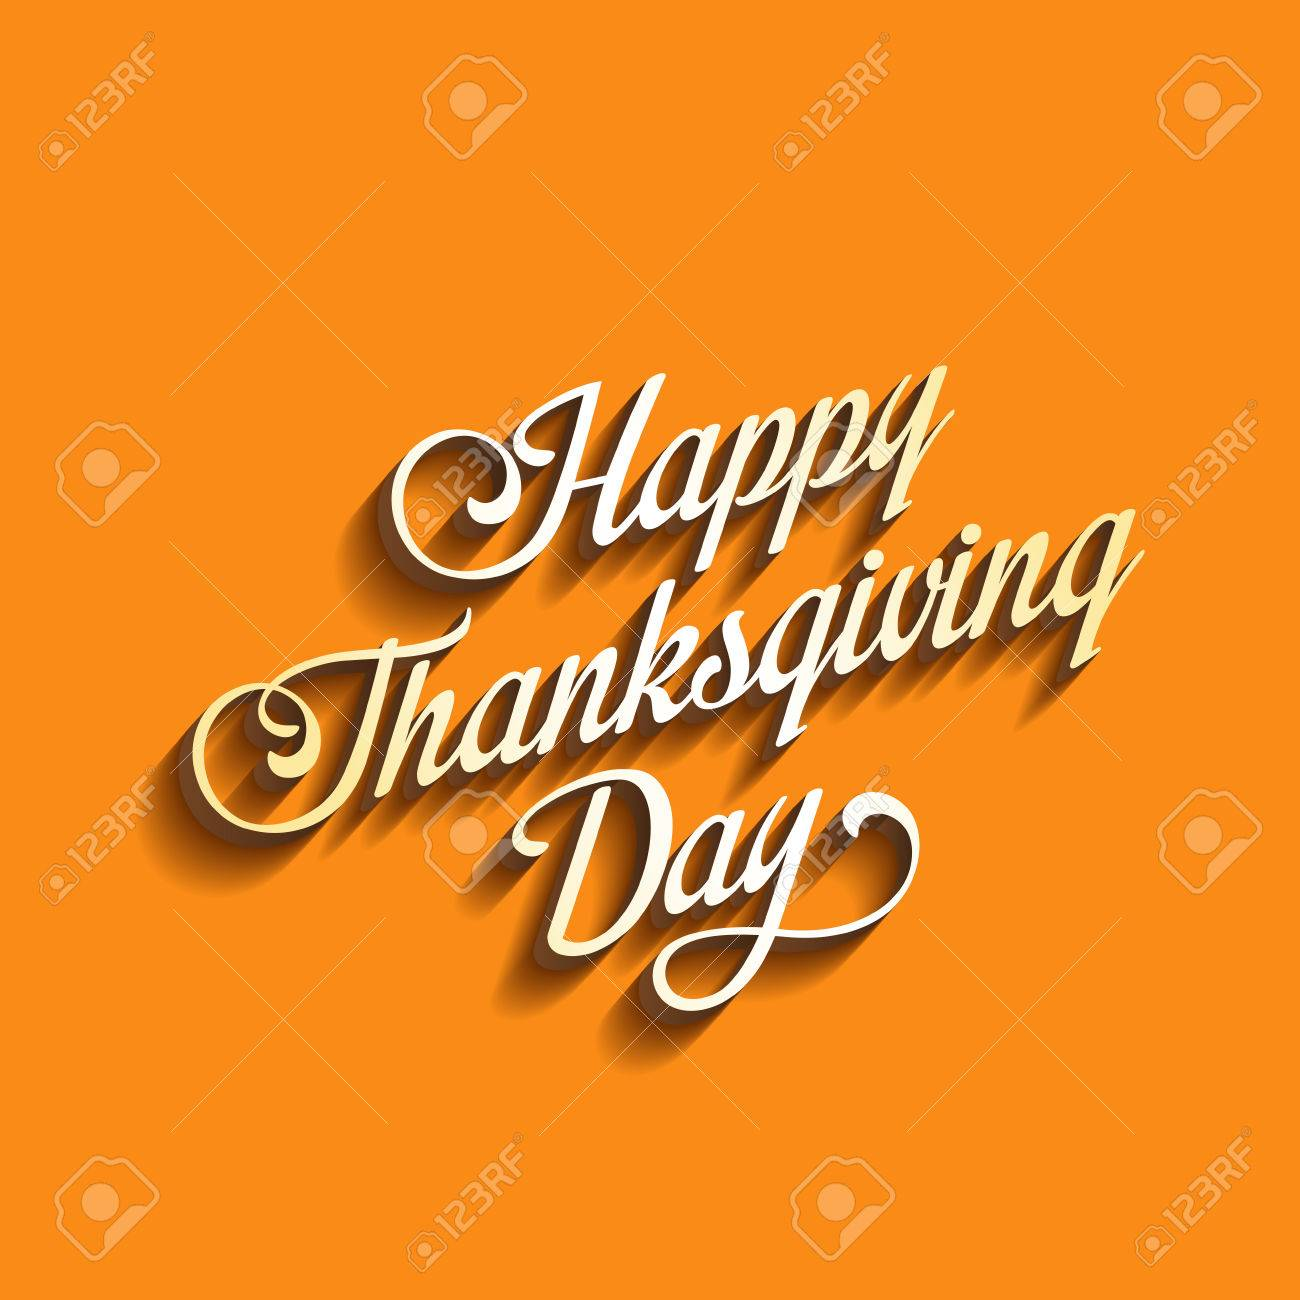 Poster design 3d - Happy Thanksgiving Day Calligraphy Greeting Card Poster Design Template Calligraphic Text 3d Long Shadow Vintage